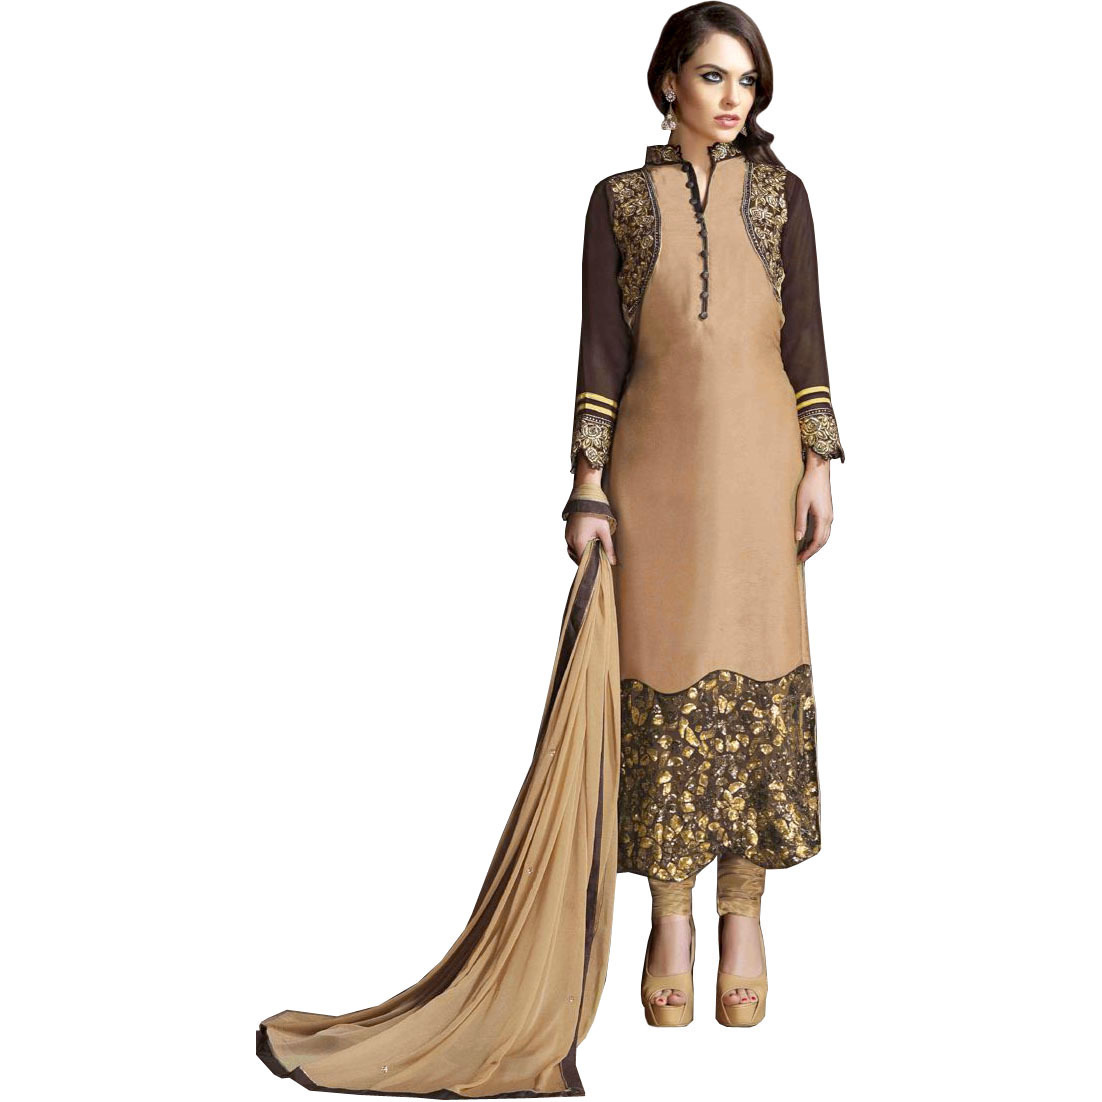 Beige and Brown Designer Long Choodidaar Kameez Suit with Zari-Embroidery and Dense Sequins on Border